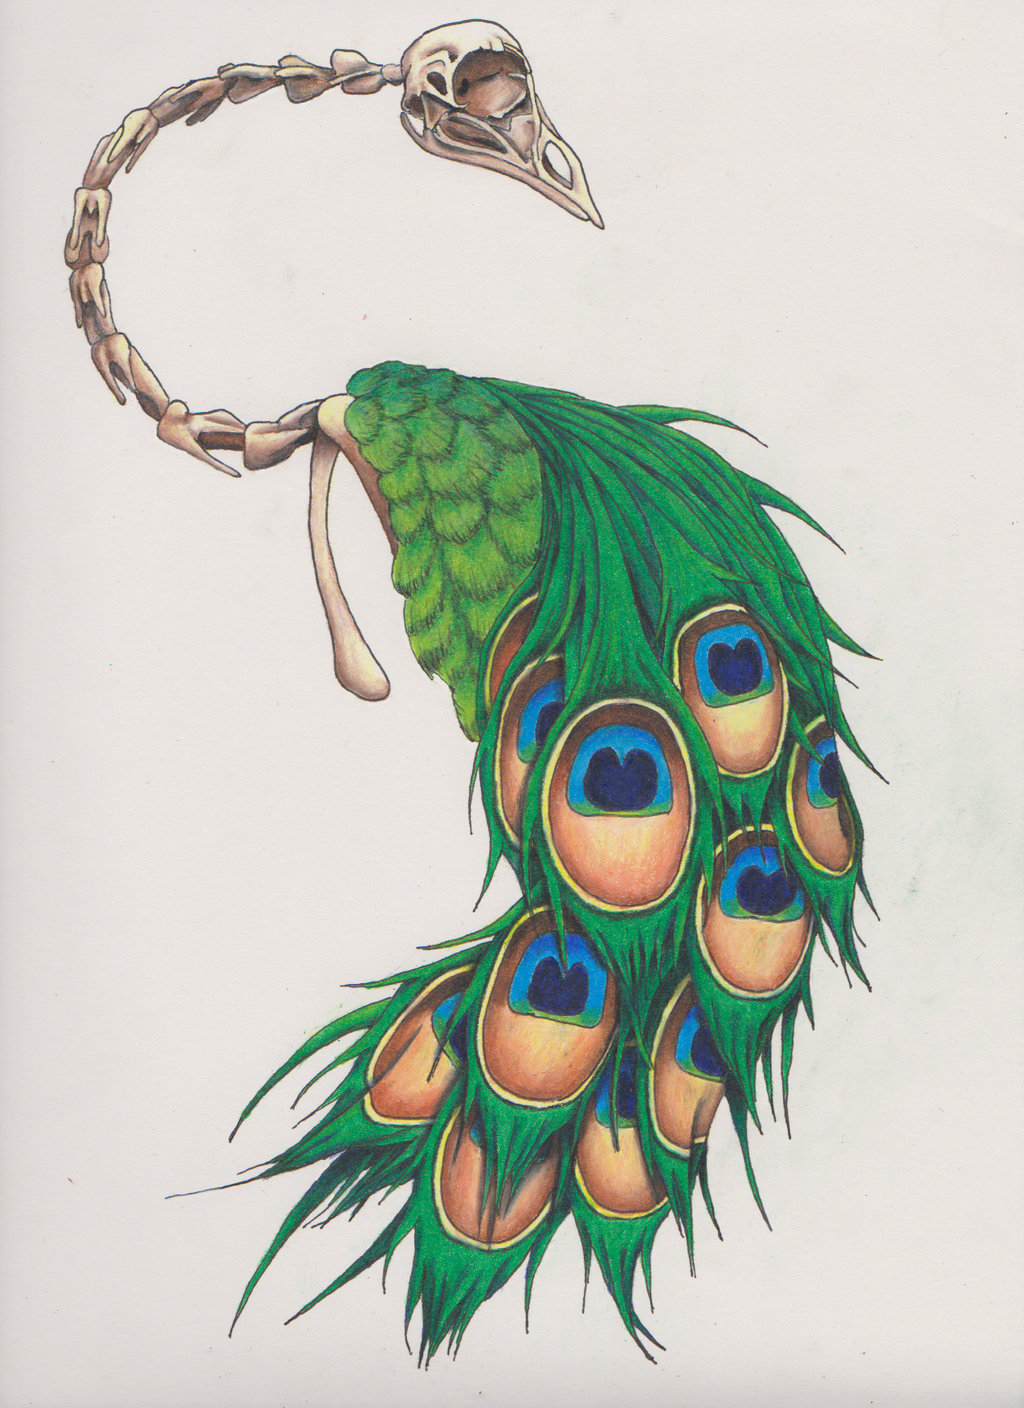 1024x1408 Skeletal Peacock Tattoo (Colorized) By Deezneedsammo